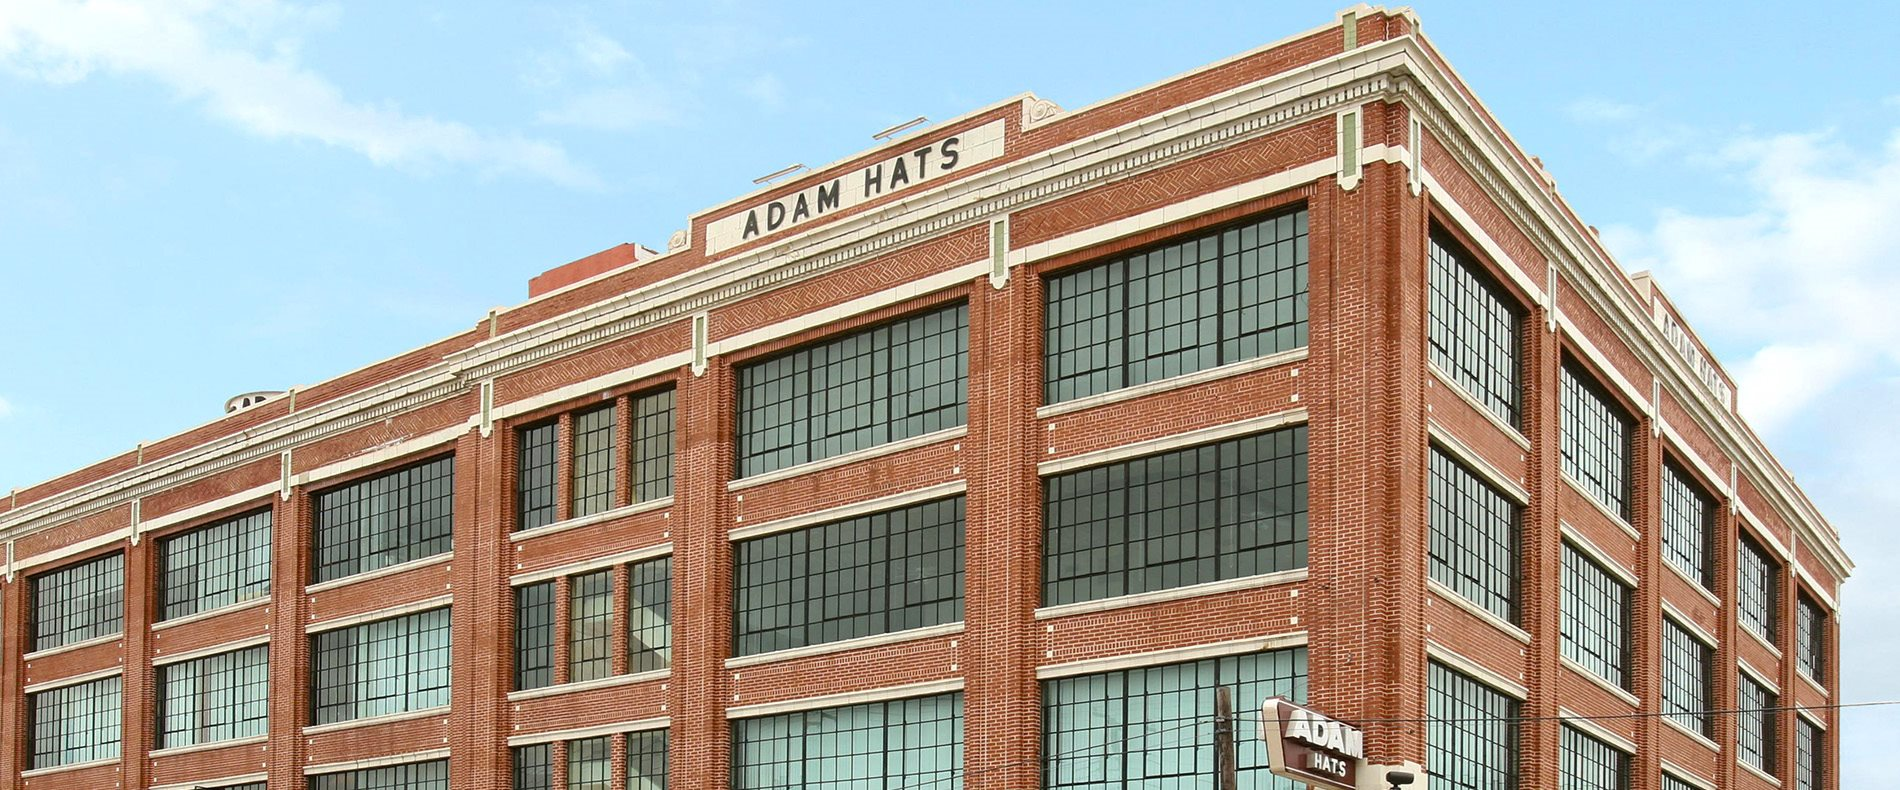 Building Exterior at Adam Hats Lofts in Deep Ellum, Dallas, Texas, TX